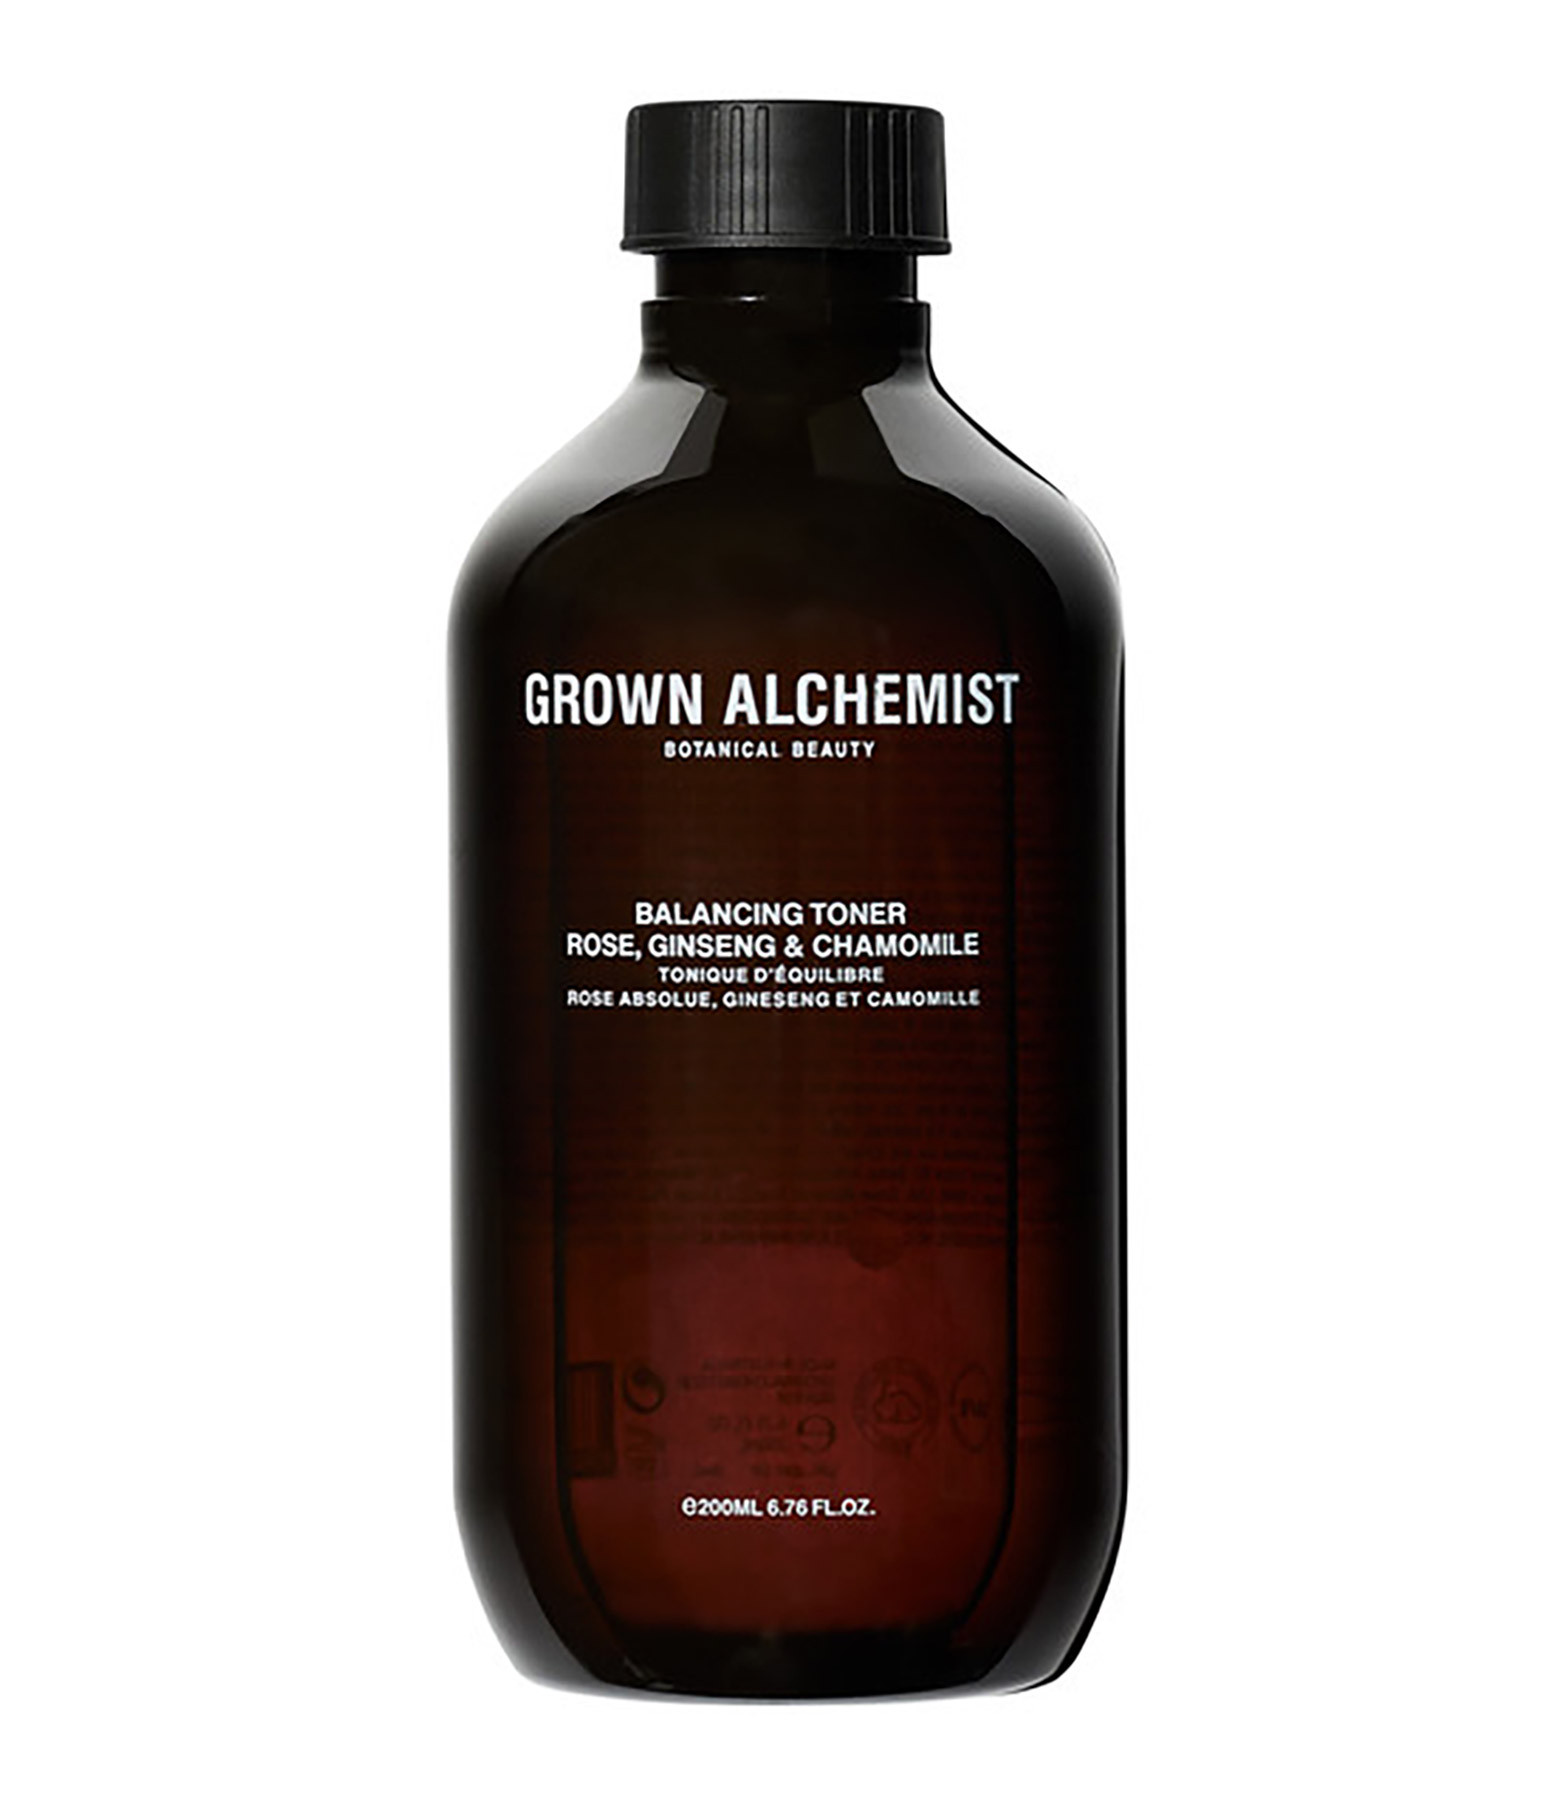 GROWN ALCHEMIST - Tonique Équilibrant 200 ml